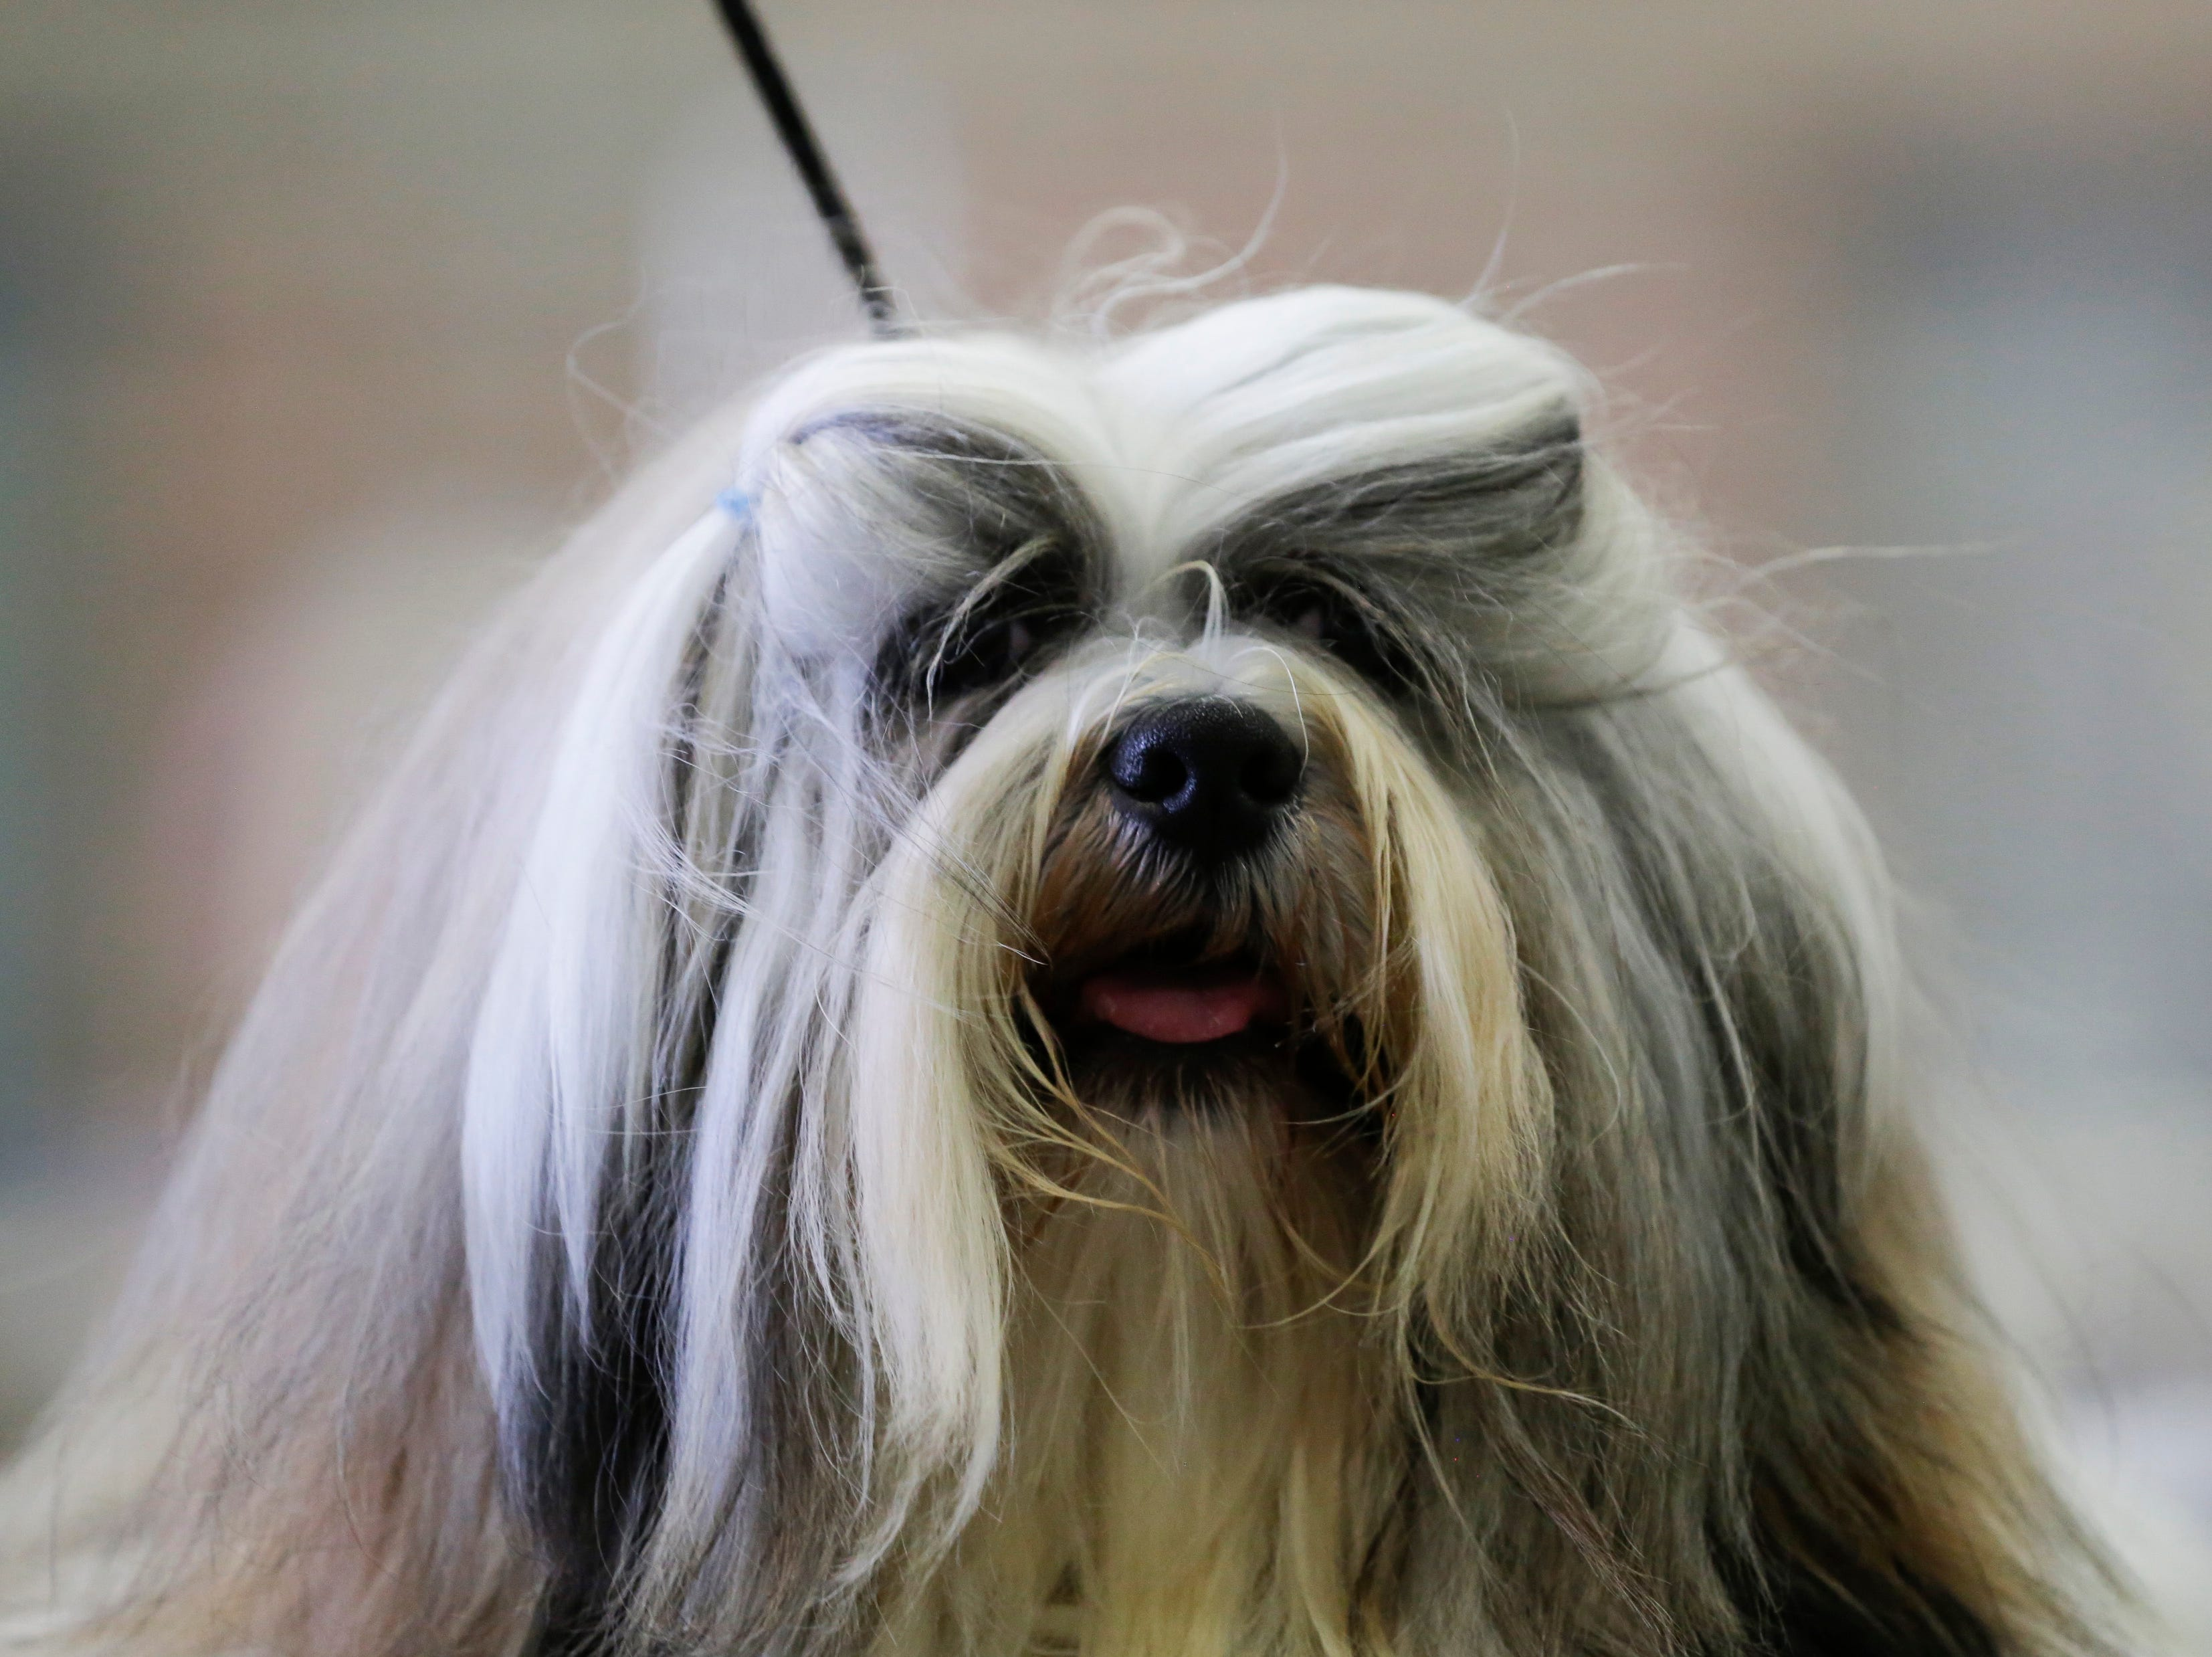 Dolce, a Lhasa Apso, waits to compete during the Marshfield Area Kennel Club's All-Breed Dog Show, Obedience Trials and Rally Trials at the Central Wisconsin Fairgrounds in Marshfield Saturday, August 18, 2018.